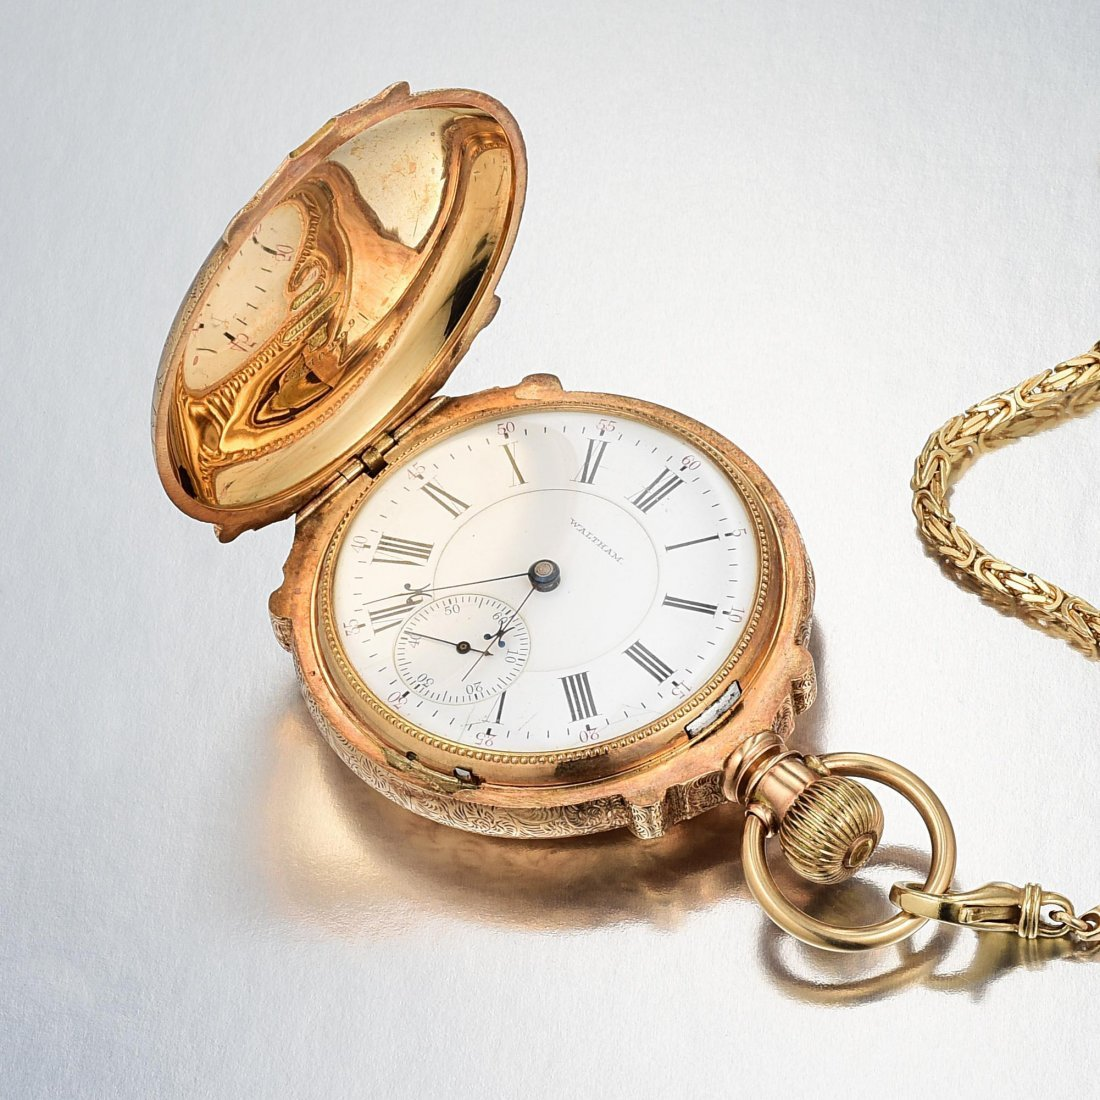 Waltham Antique Pocket Watch with 14K Gold Hunter Case - 6